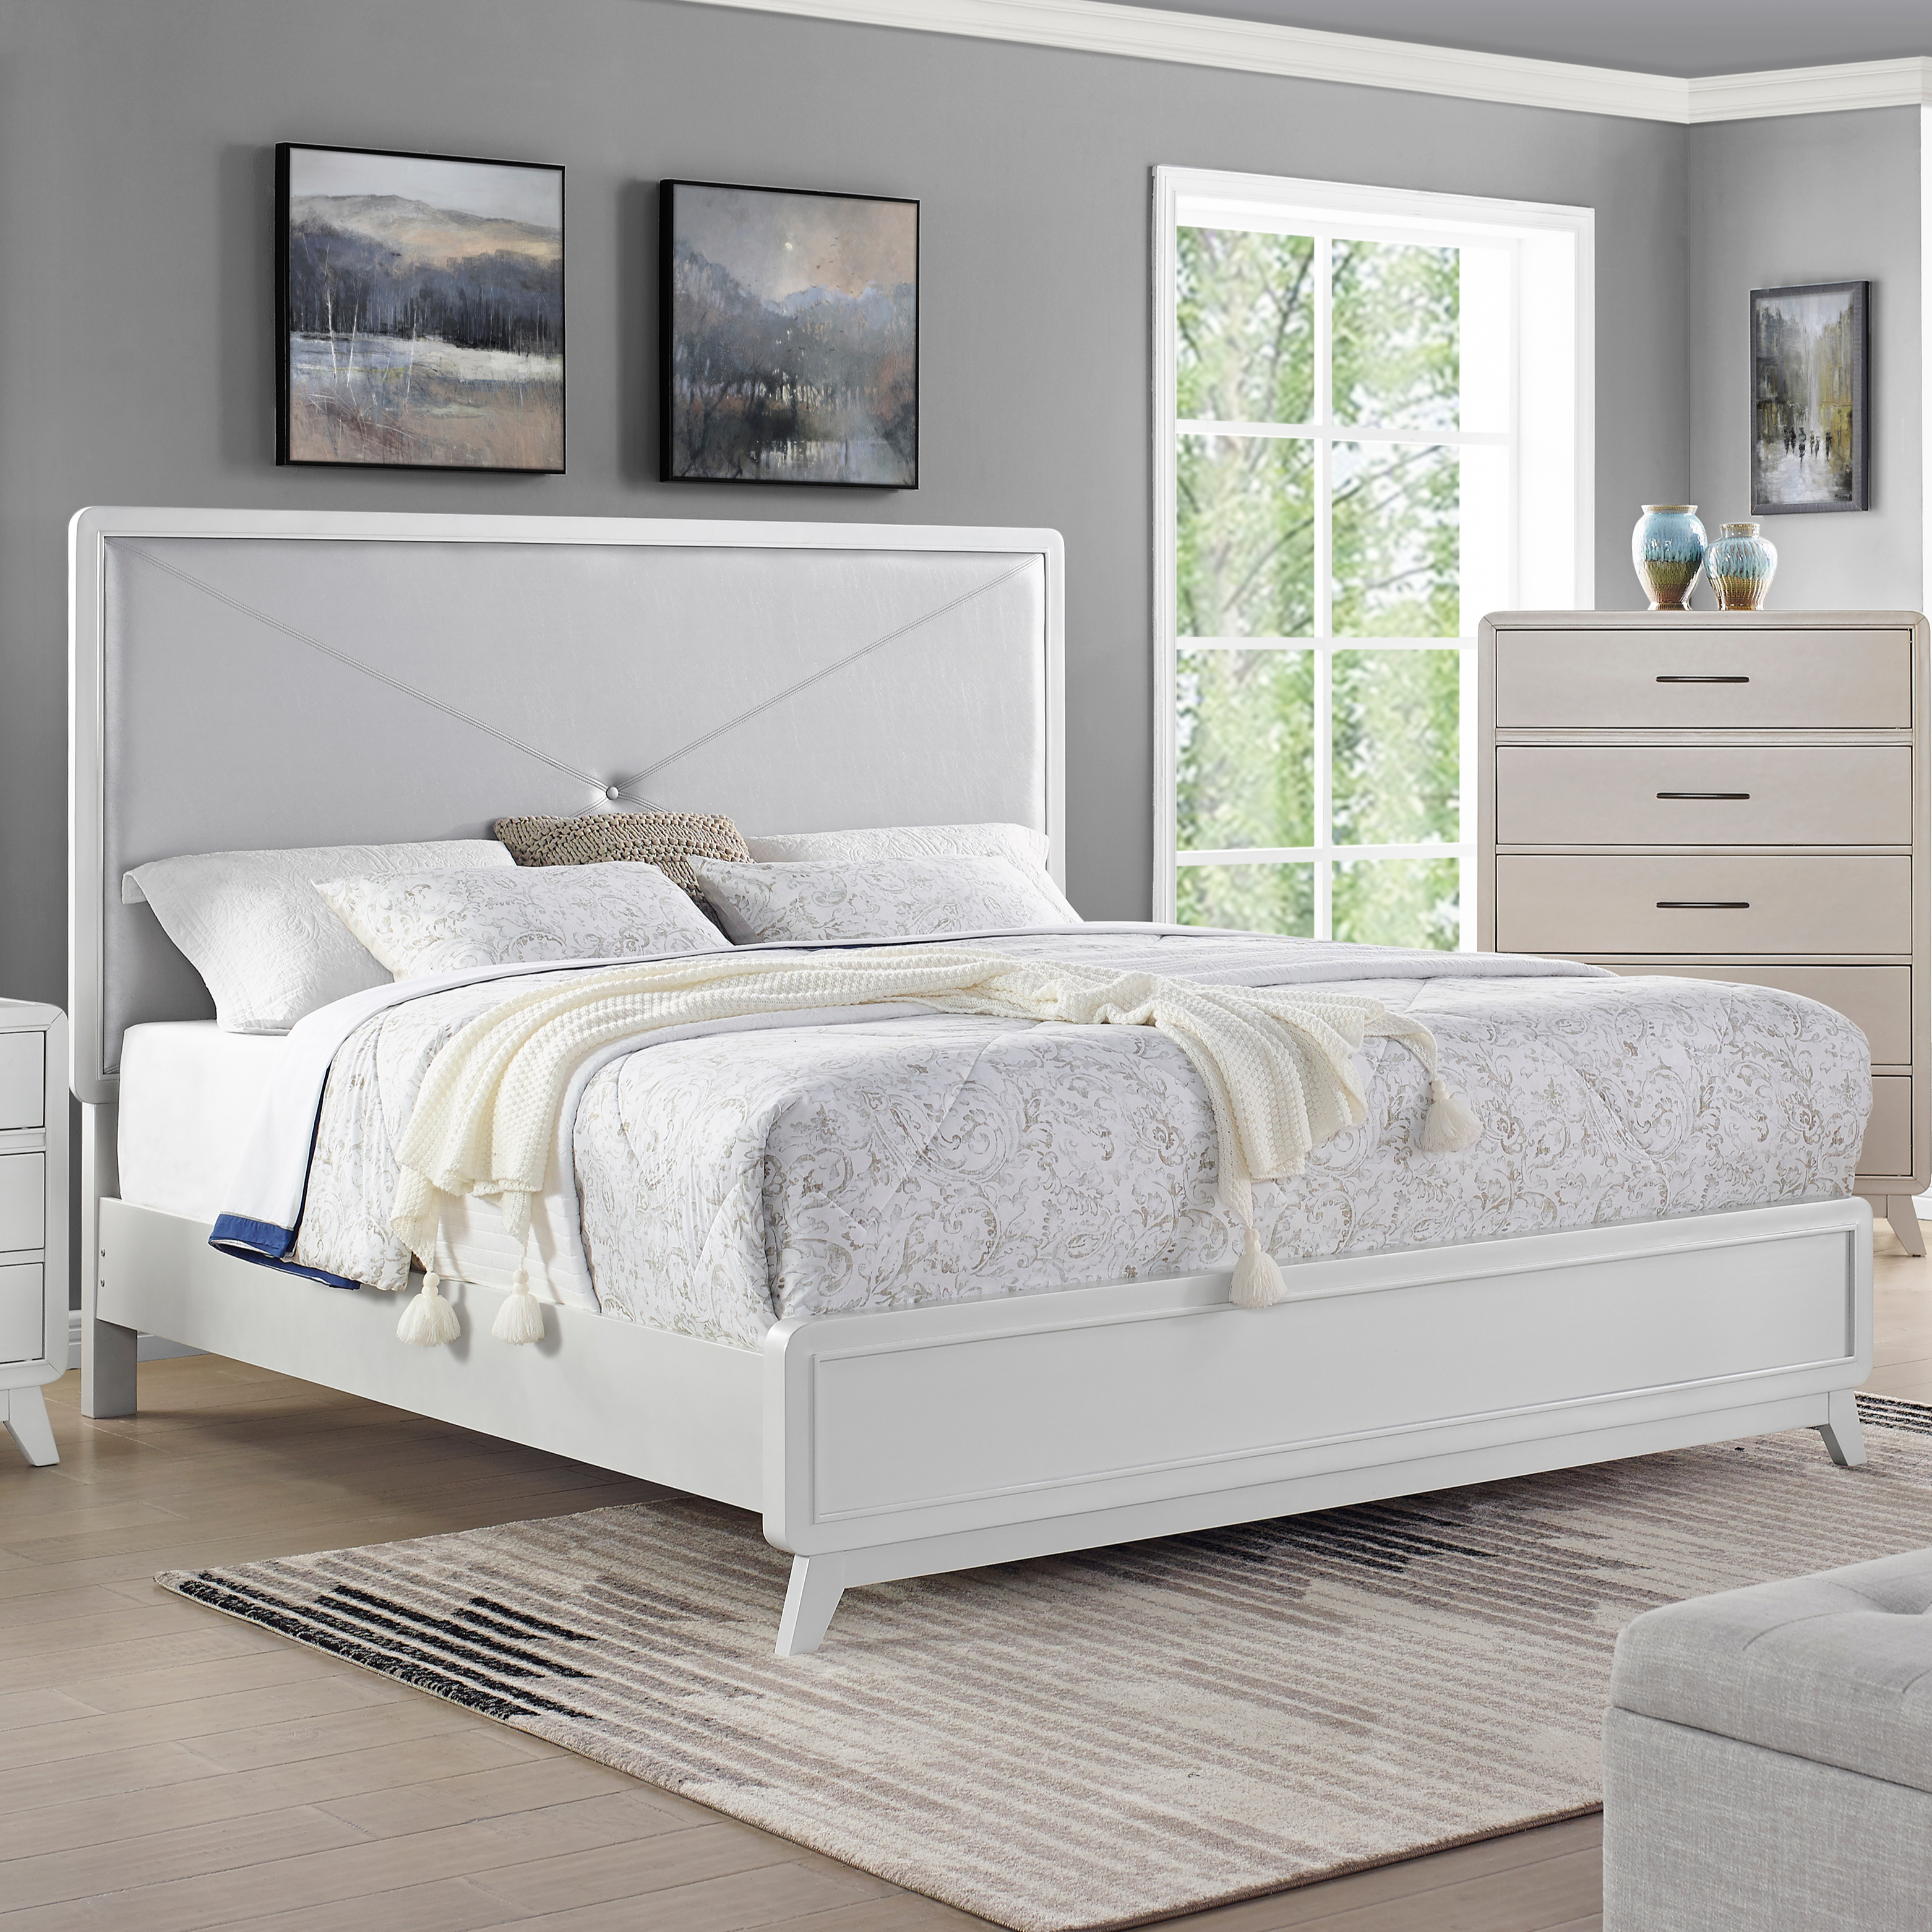 Skylar California King Bed by New Classic at Beds N Stuff